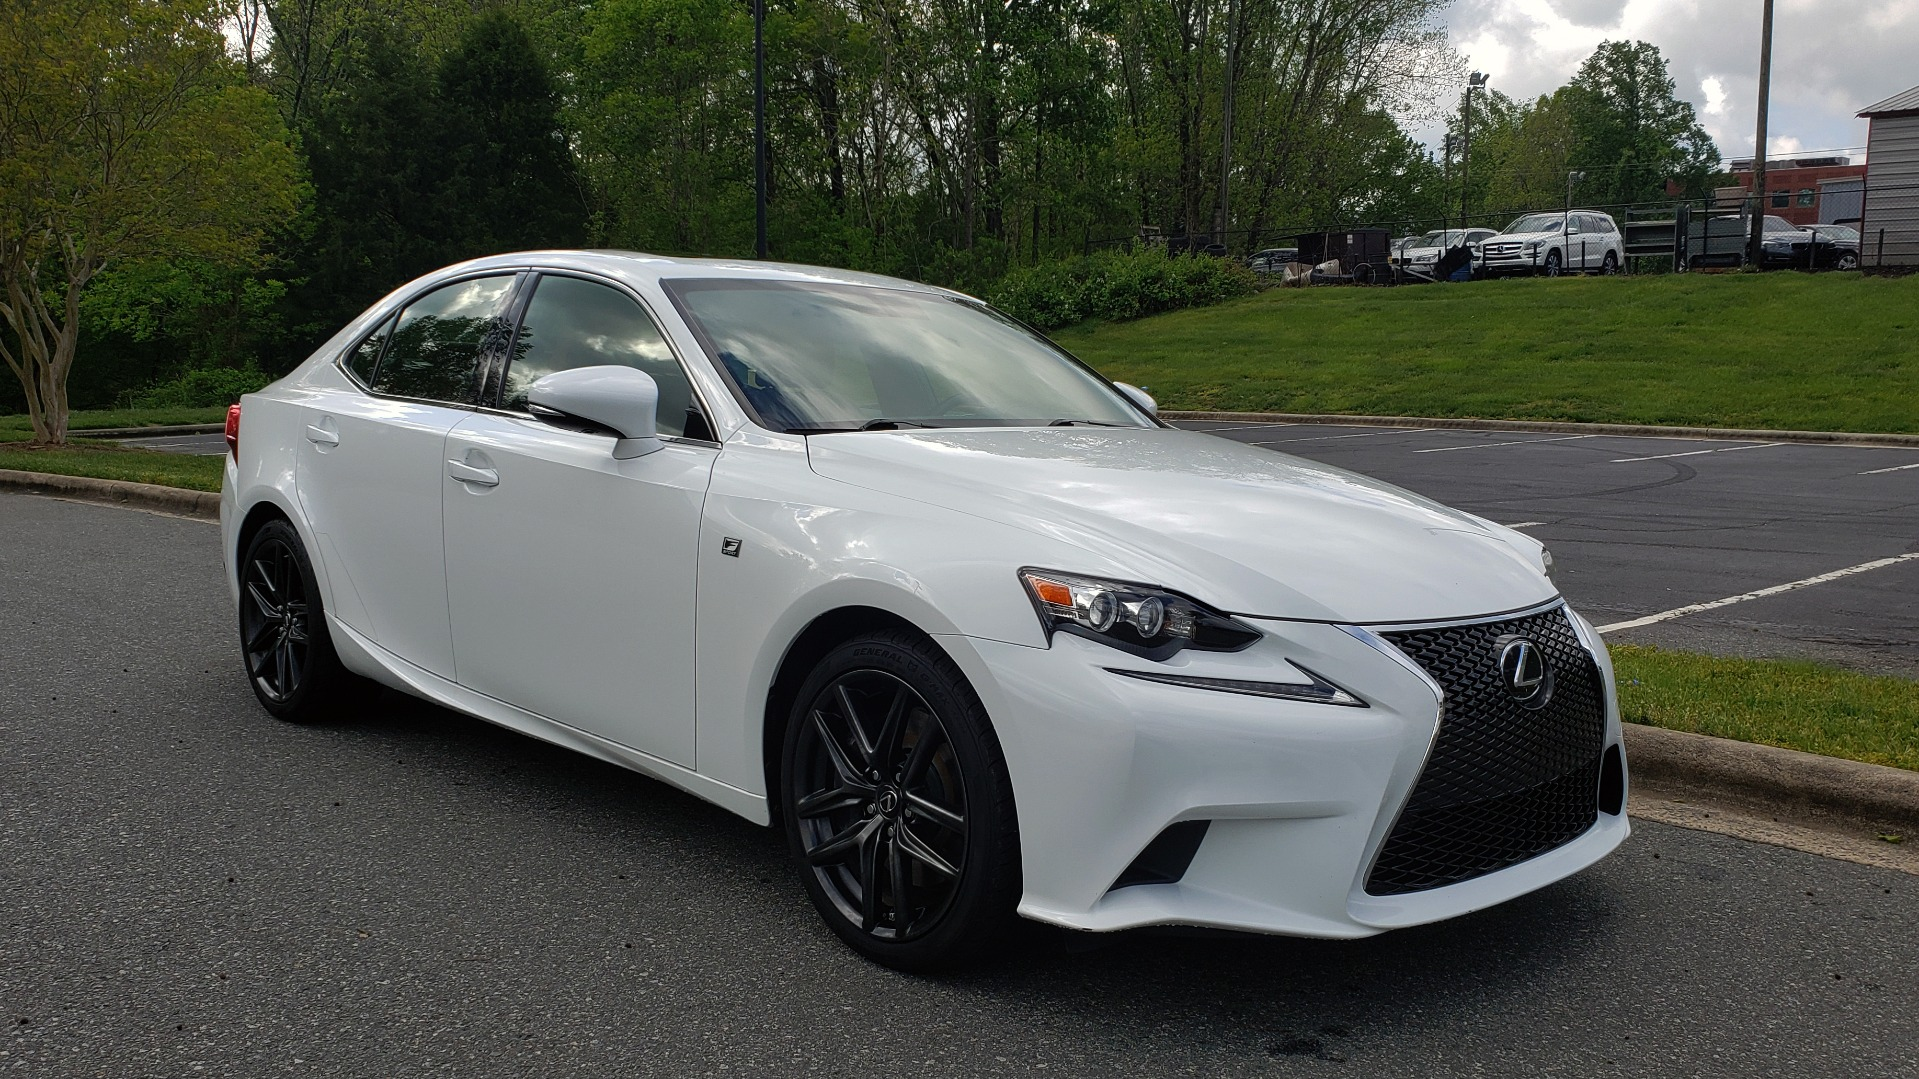 Used 2016 Lexus IS 350 F-SPORT / NAV / BSM / SUNROOF / REARVIEW / VENT SEATS for sale Sold at Formula Imports in Charlotte NC 28227 4